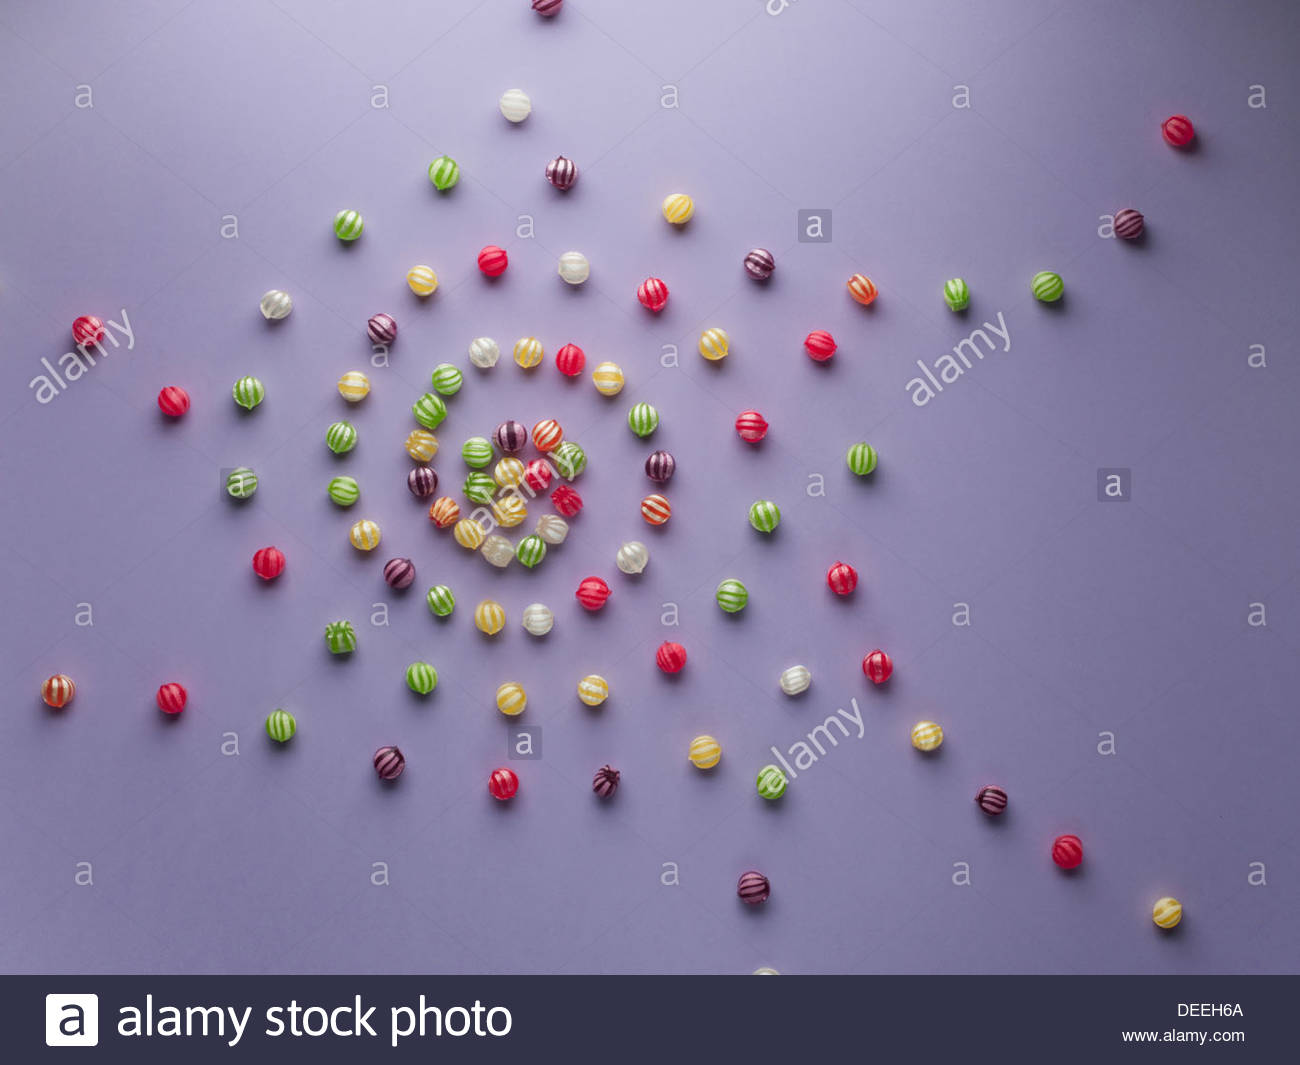 Spiral of vibrant hard candy - Stock Image